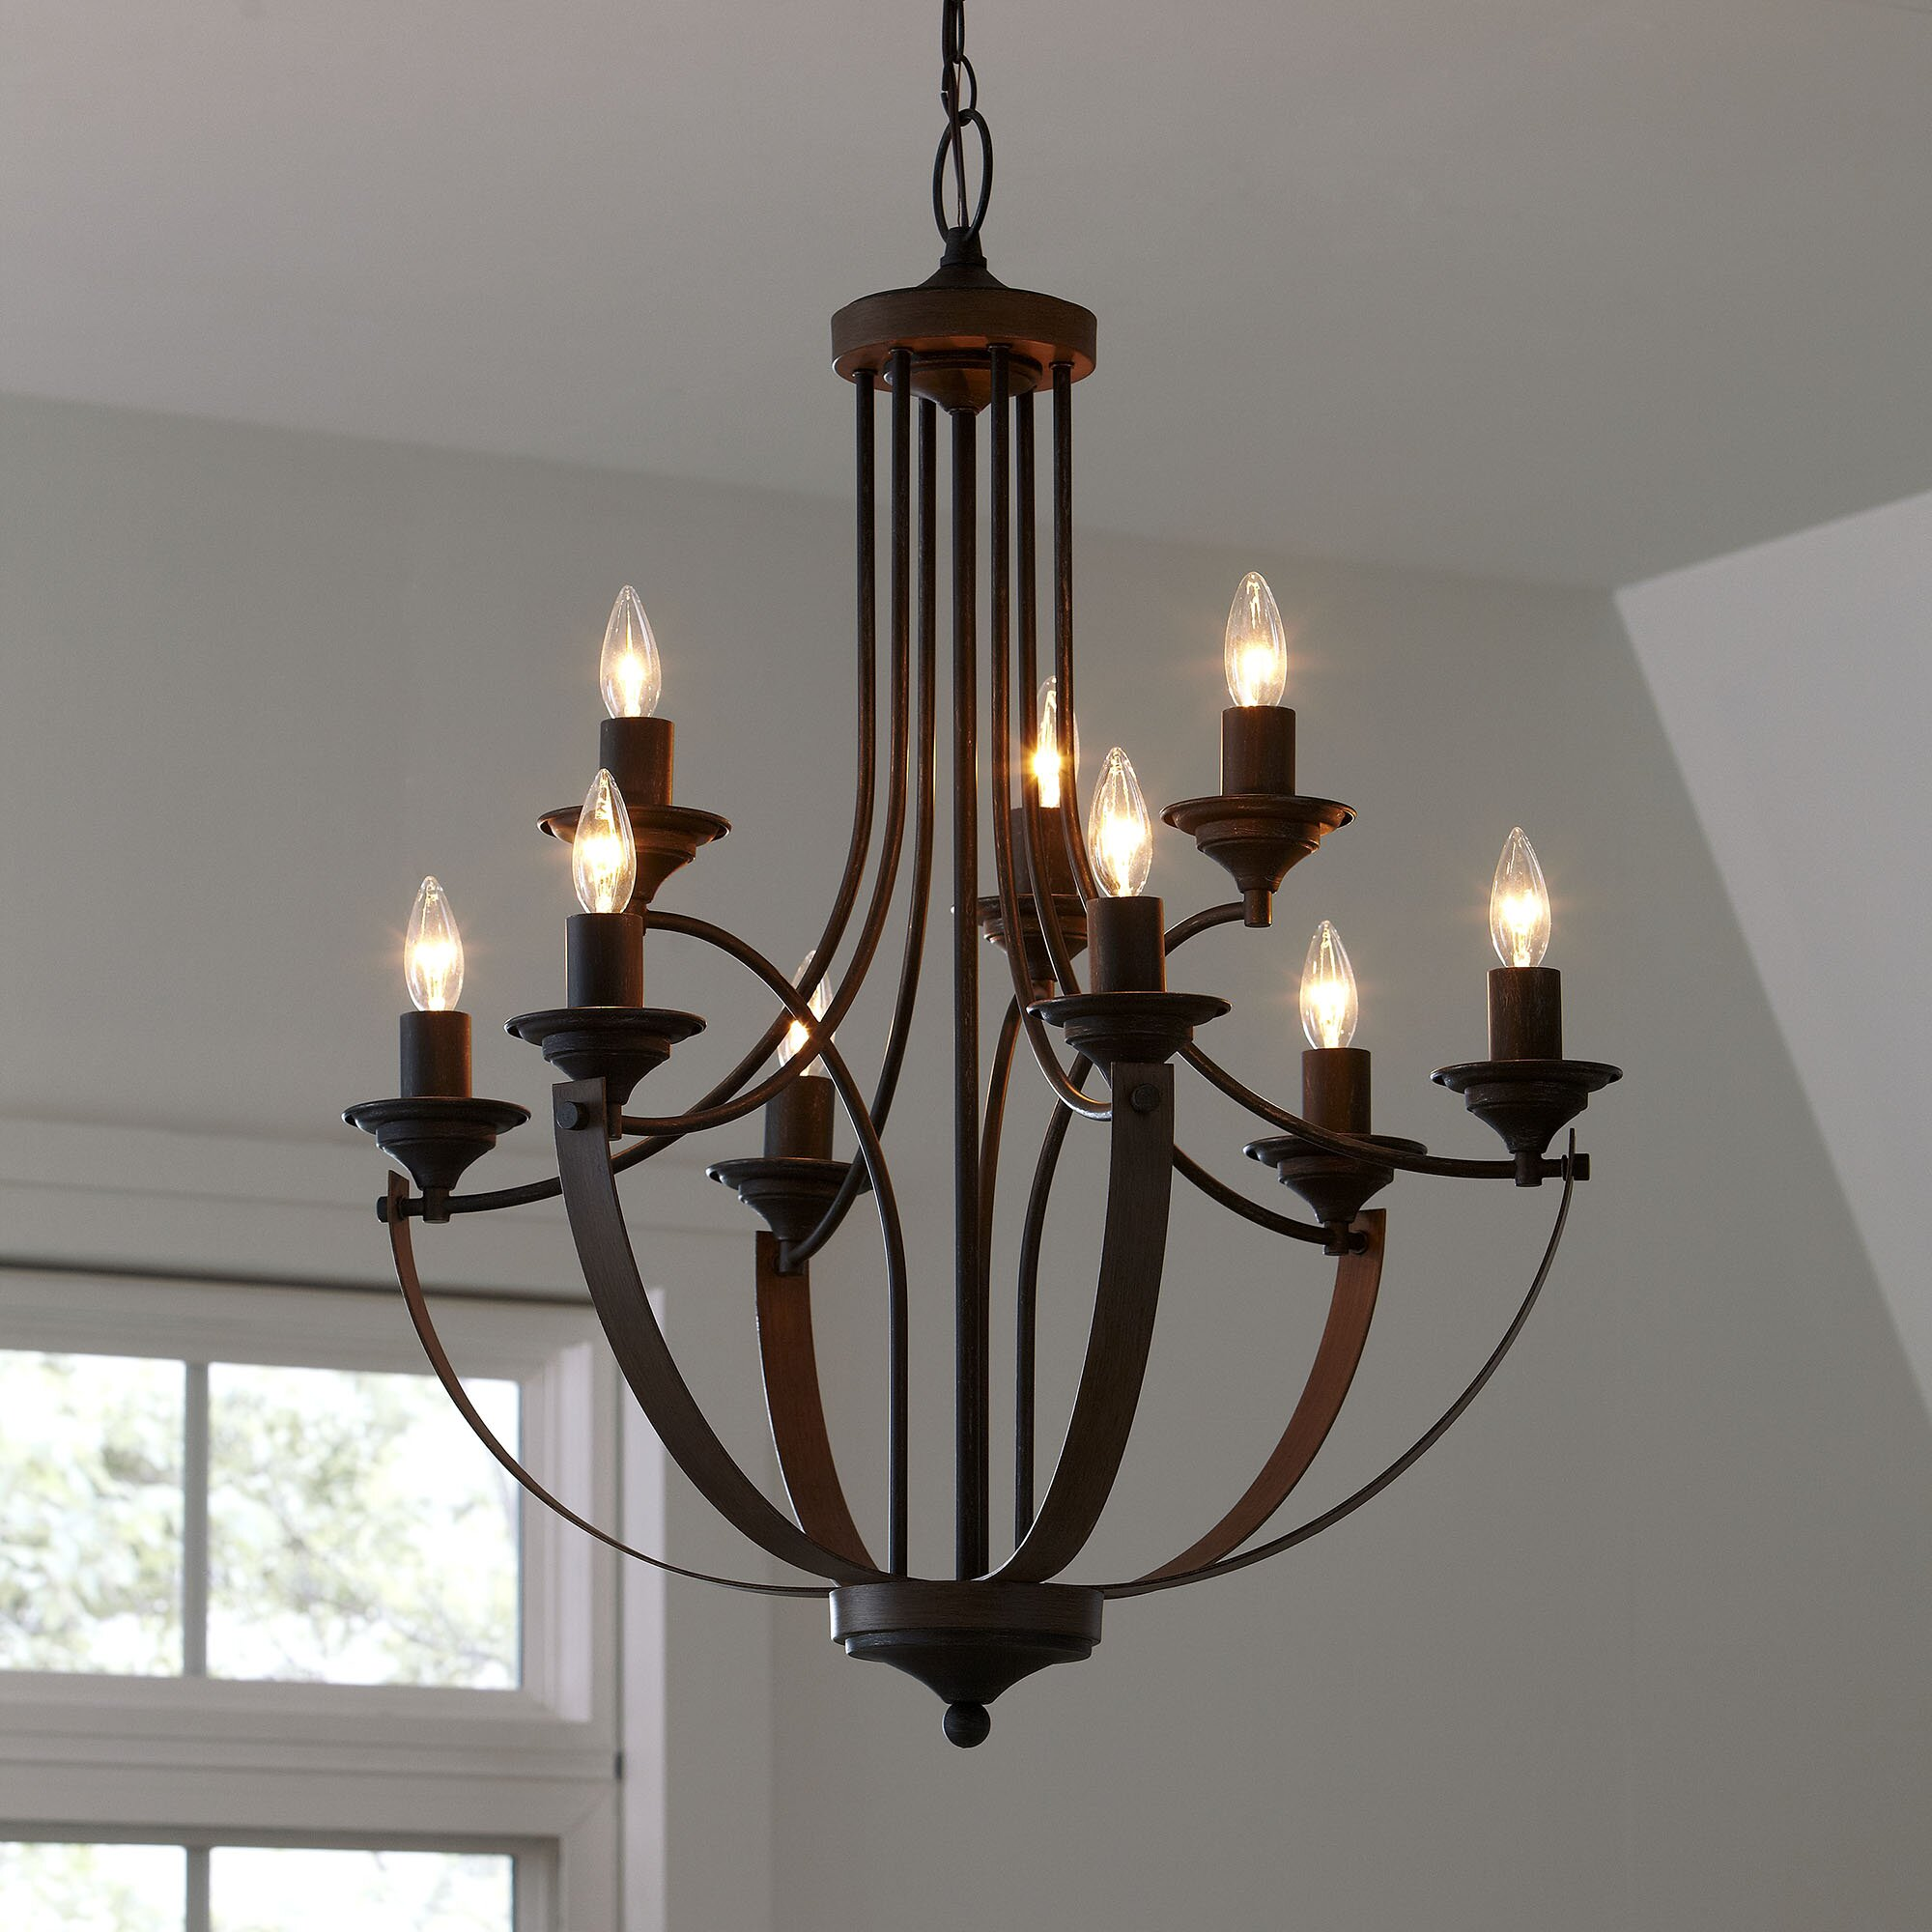 Wayfair Chandelier: Birch Lane Camilla Chandelier & Reviews